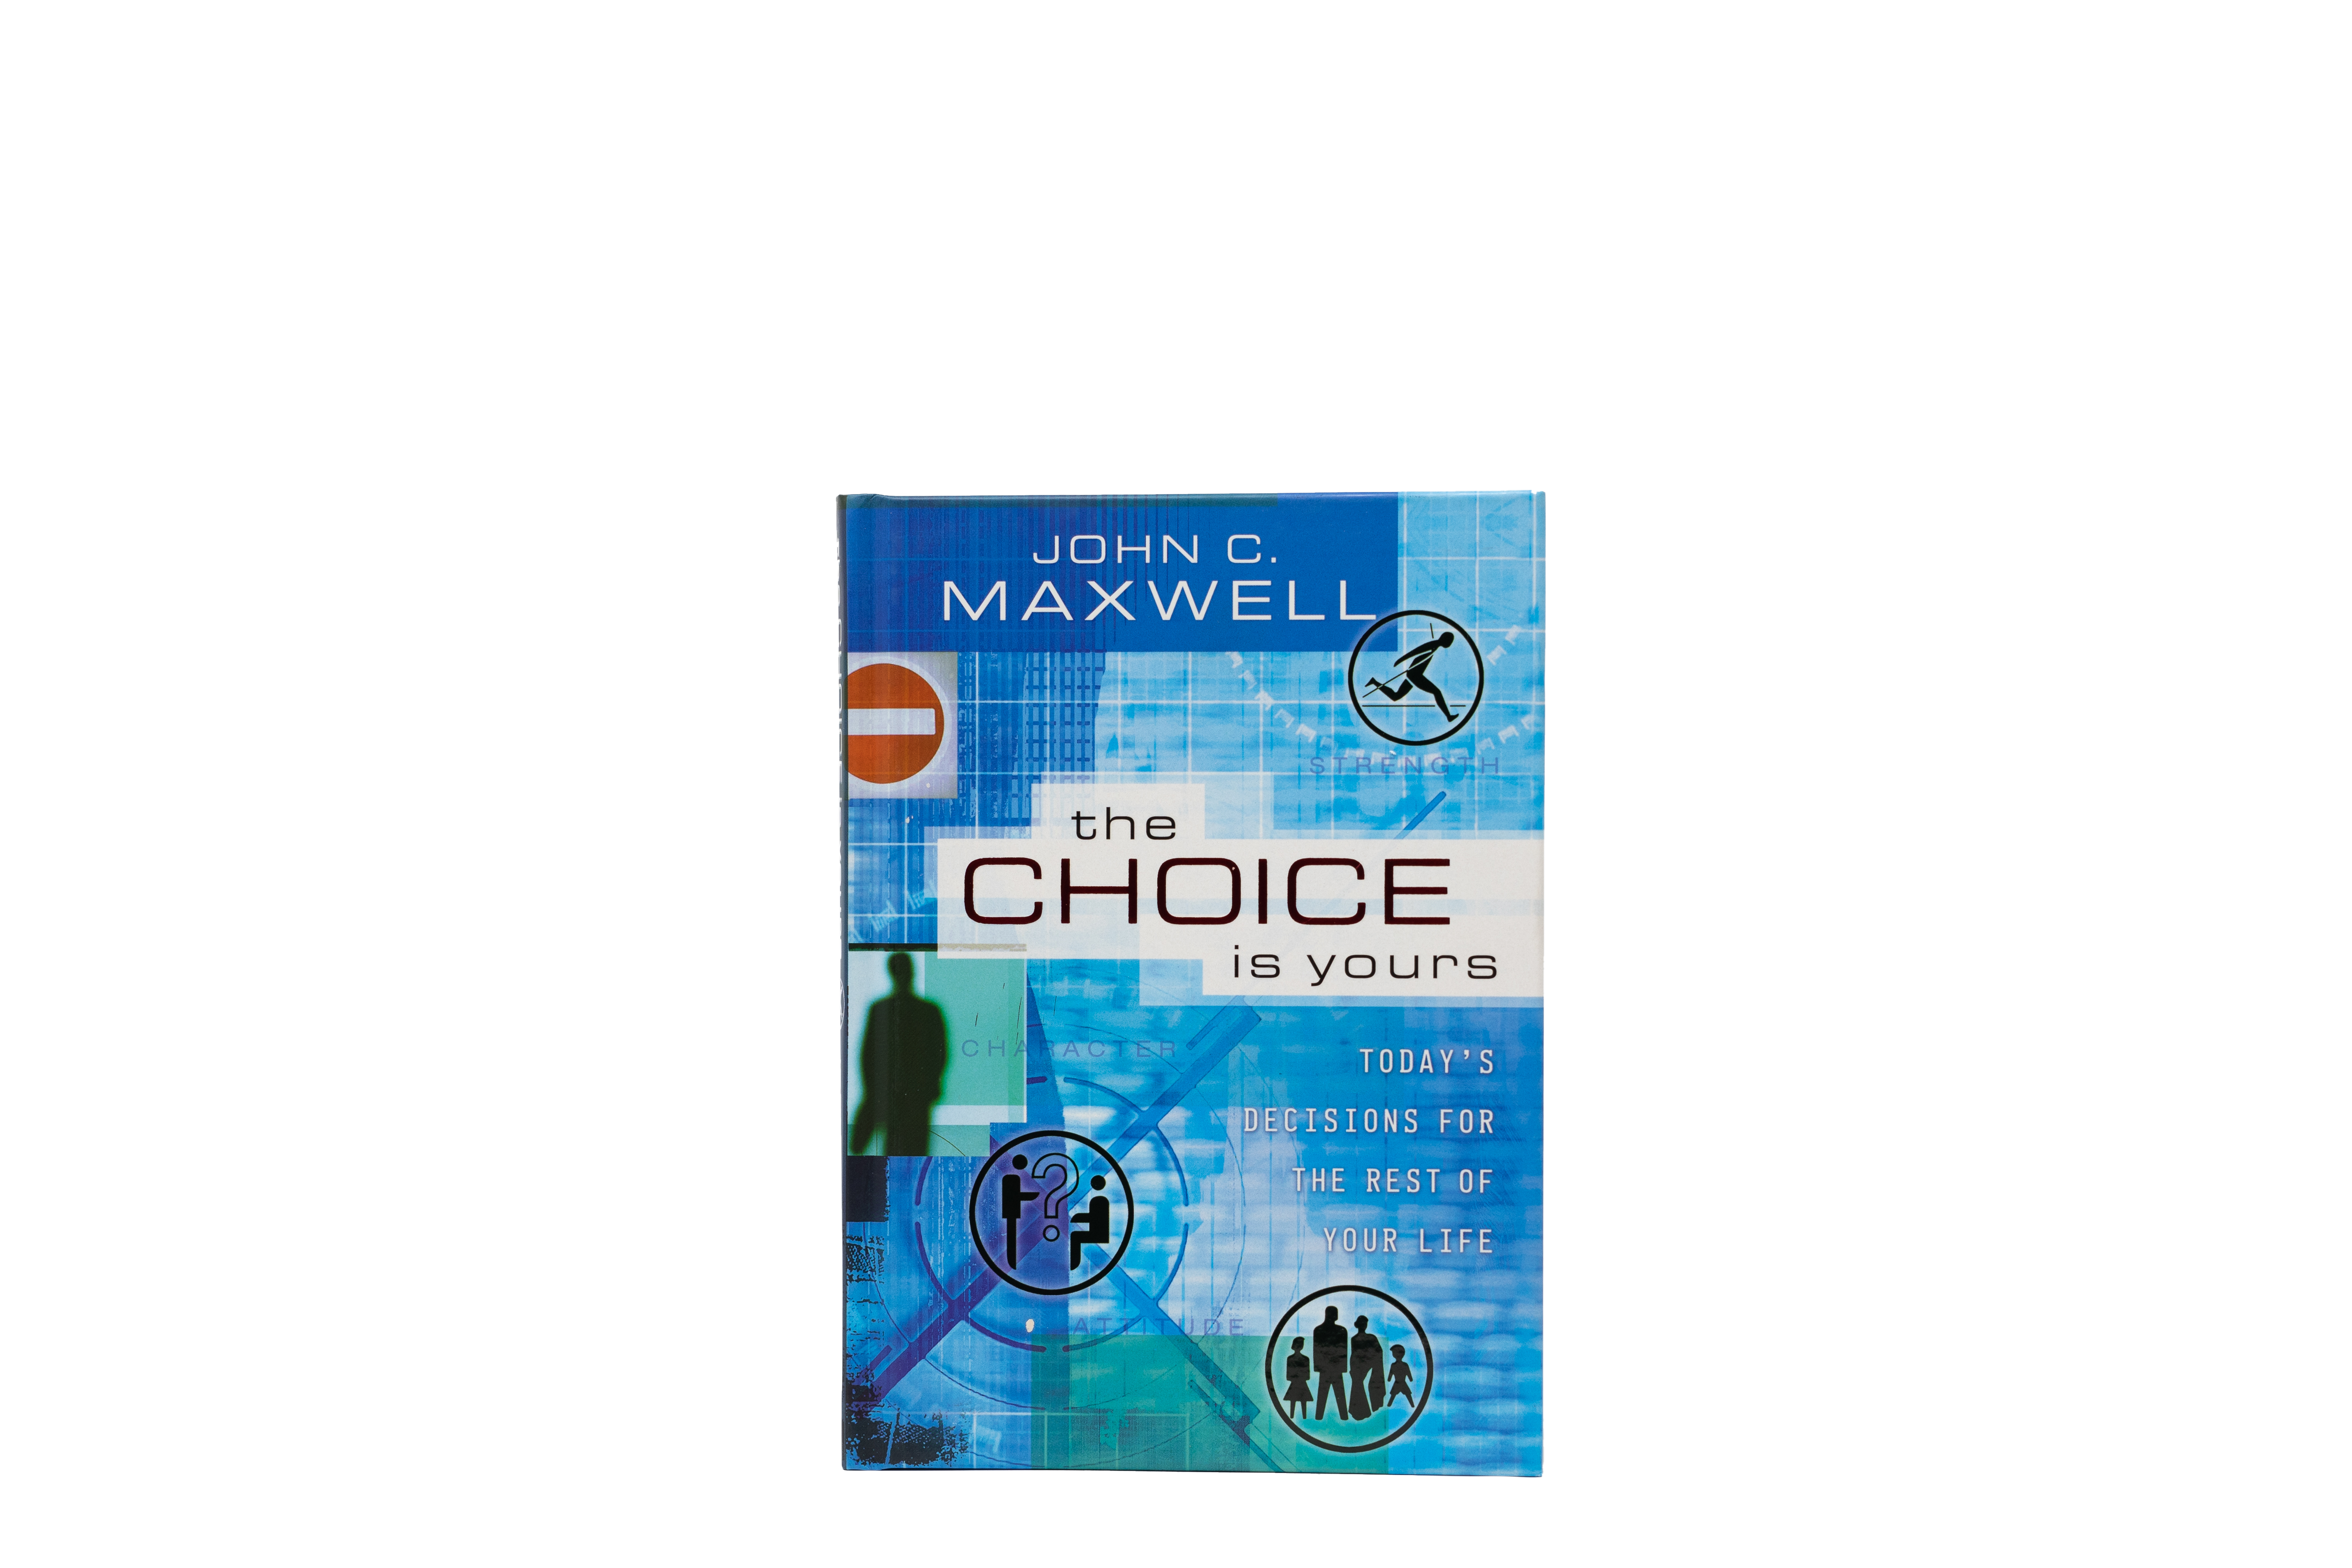 The Choice is Yours [Hardcover]